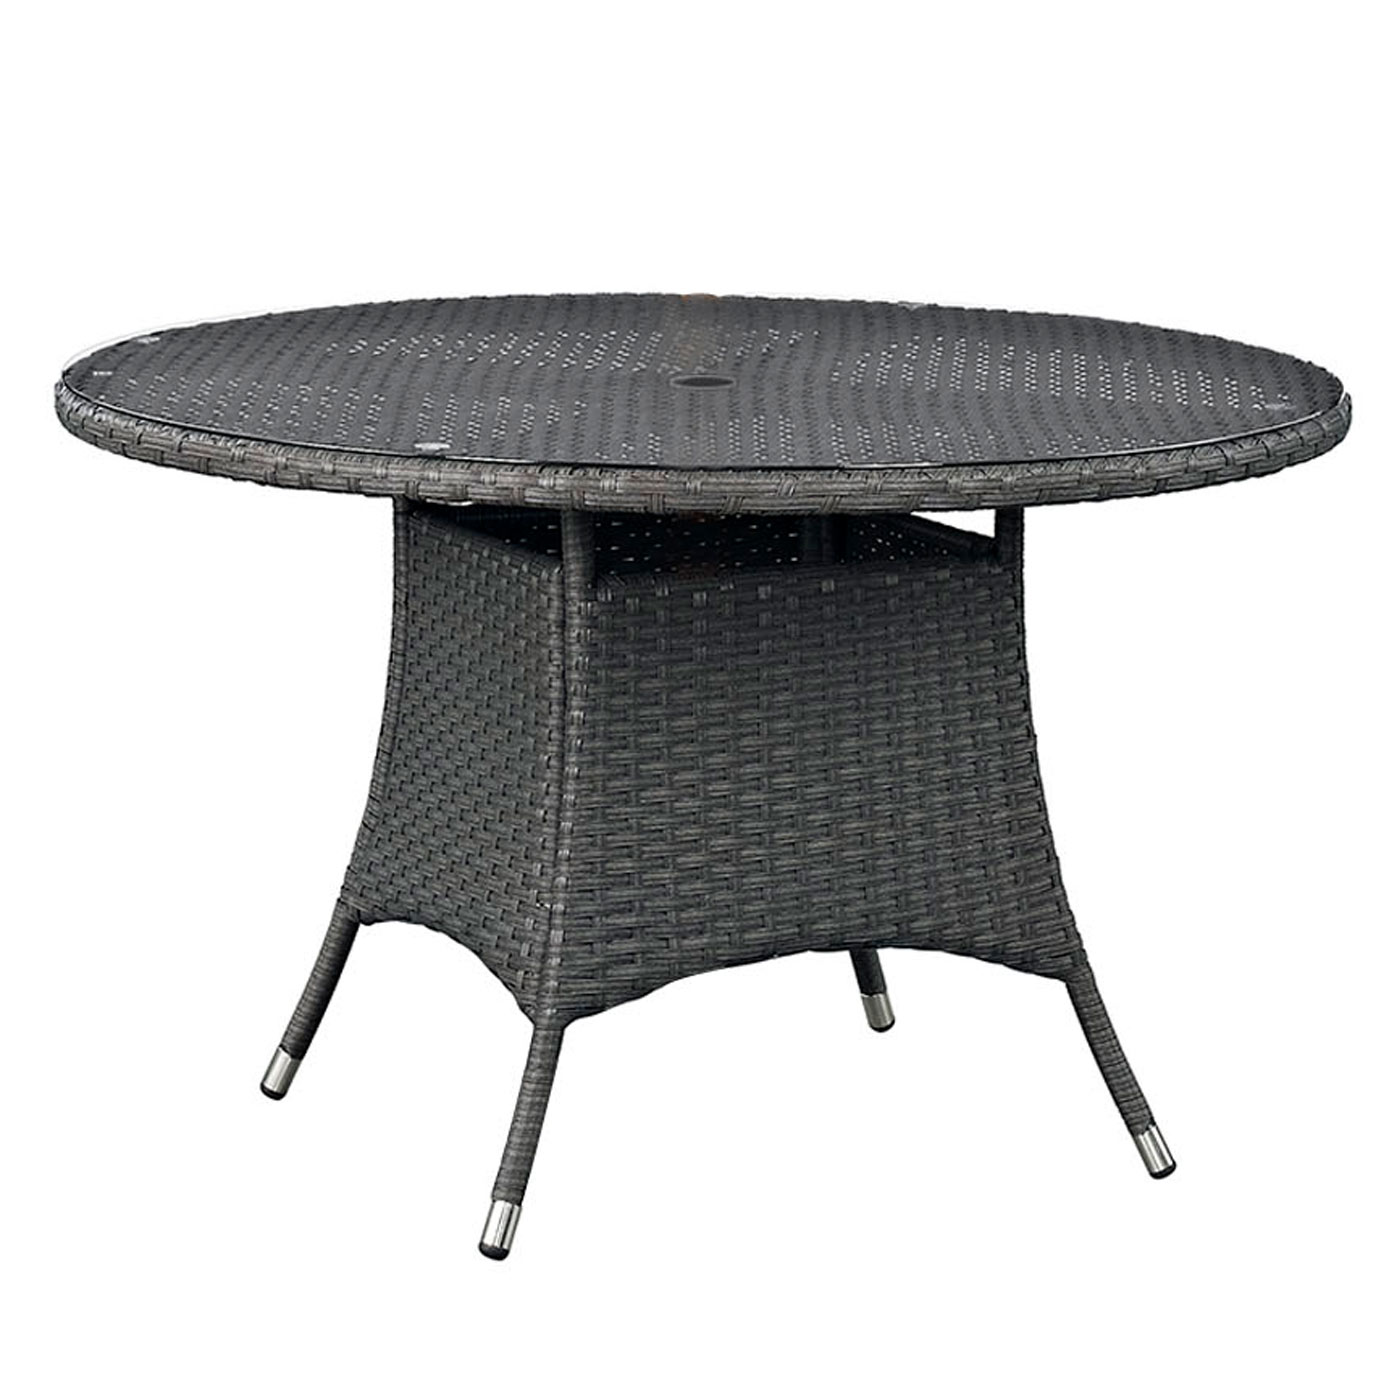 modway sojourn 47 round outdoor patio dining table in chocolate free